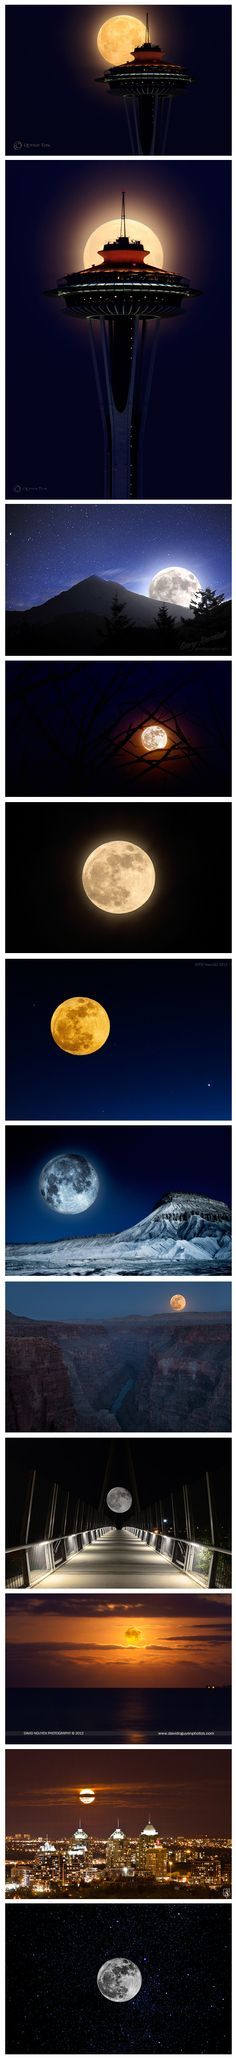 An Incredible Collection of the Best Supermoon Images of 2012